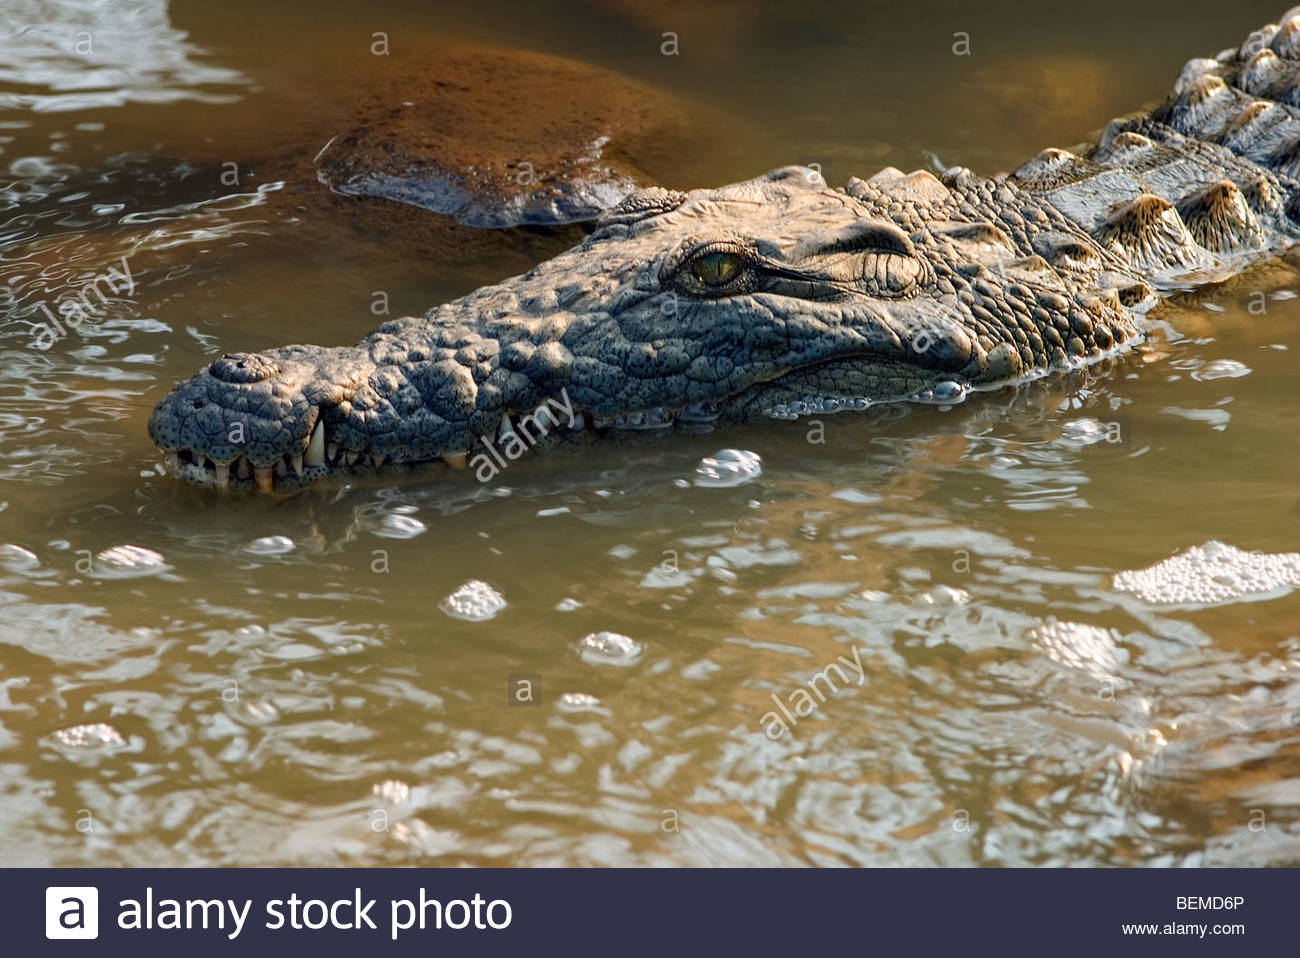 Close-up of Nile crocodile (Crocodylus niloticus) swiming in water, South Africa - Stock Image